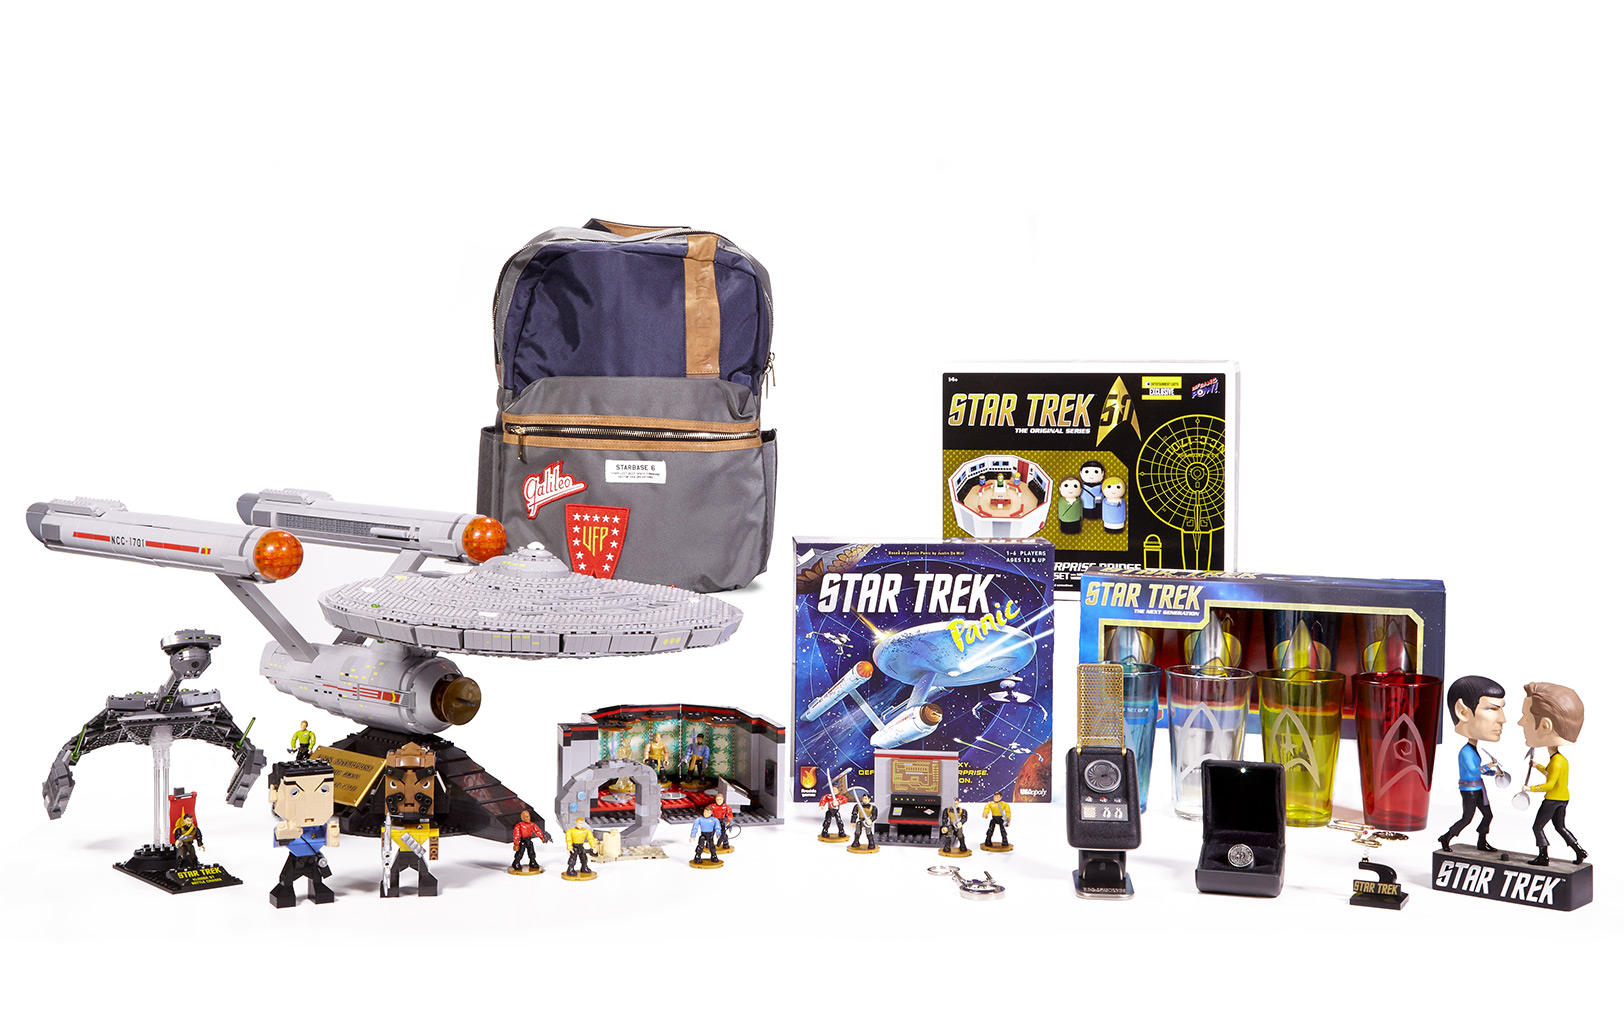 Space.com's Holiday Gift Picks